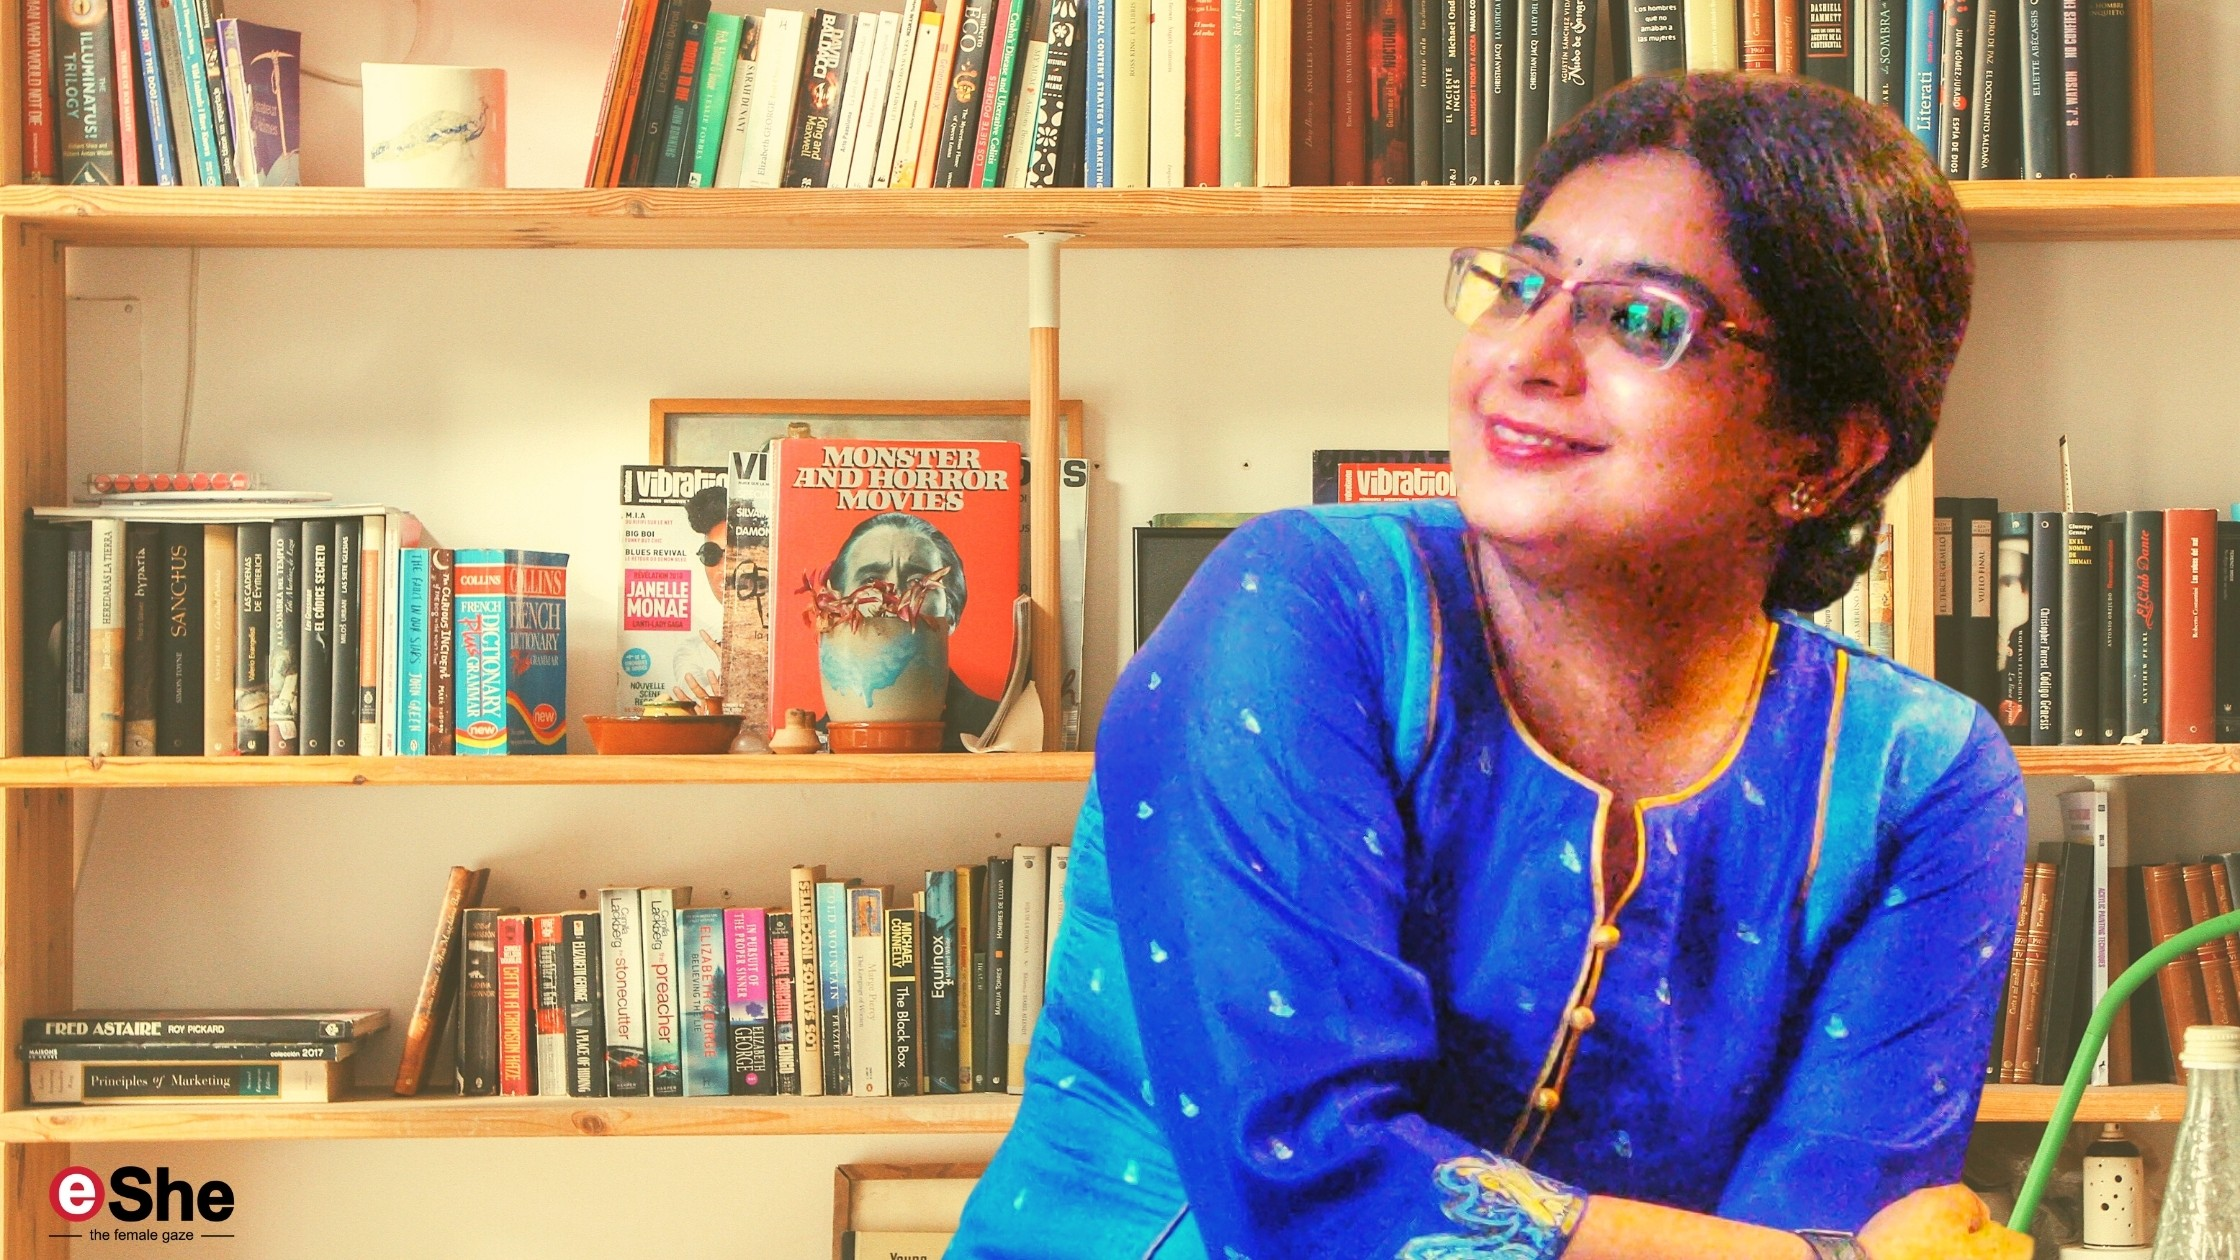 The Pandemic Through the Eyes and Reading List of a Bibliophile